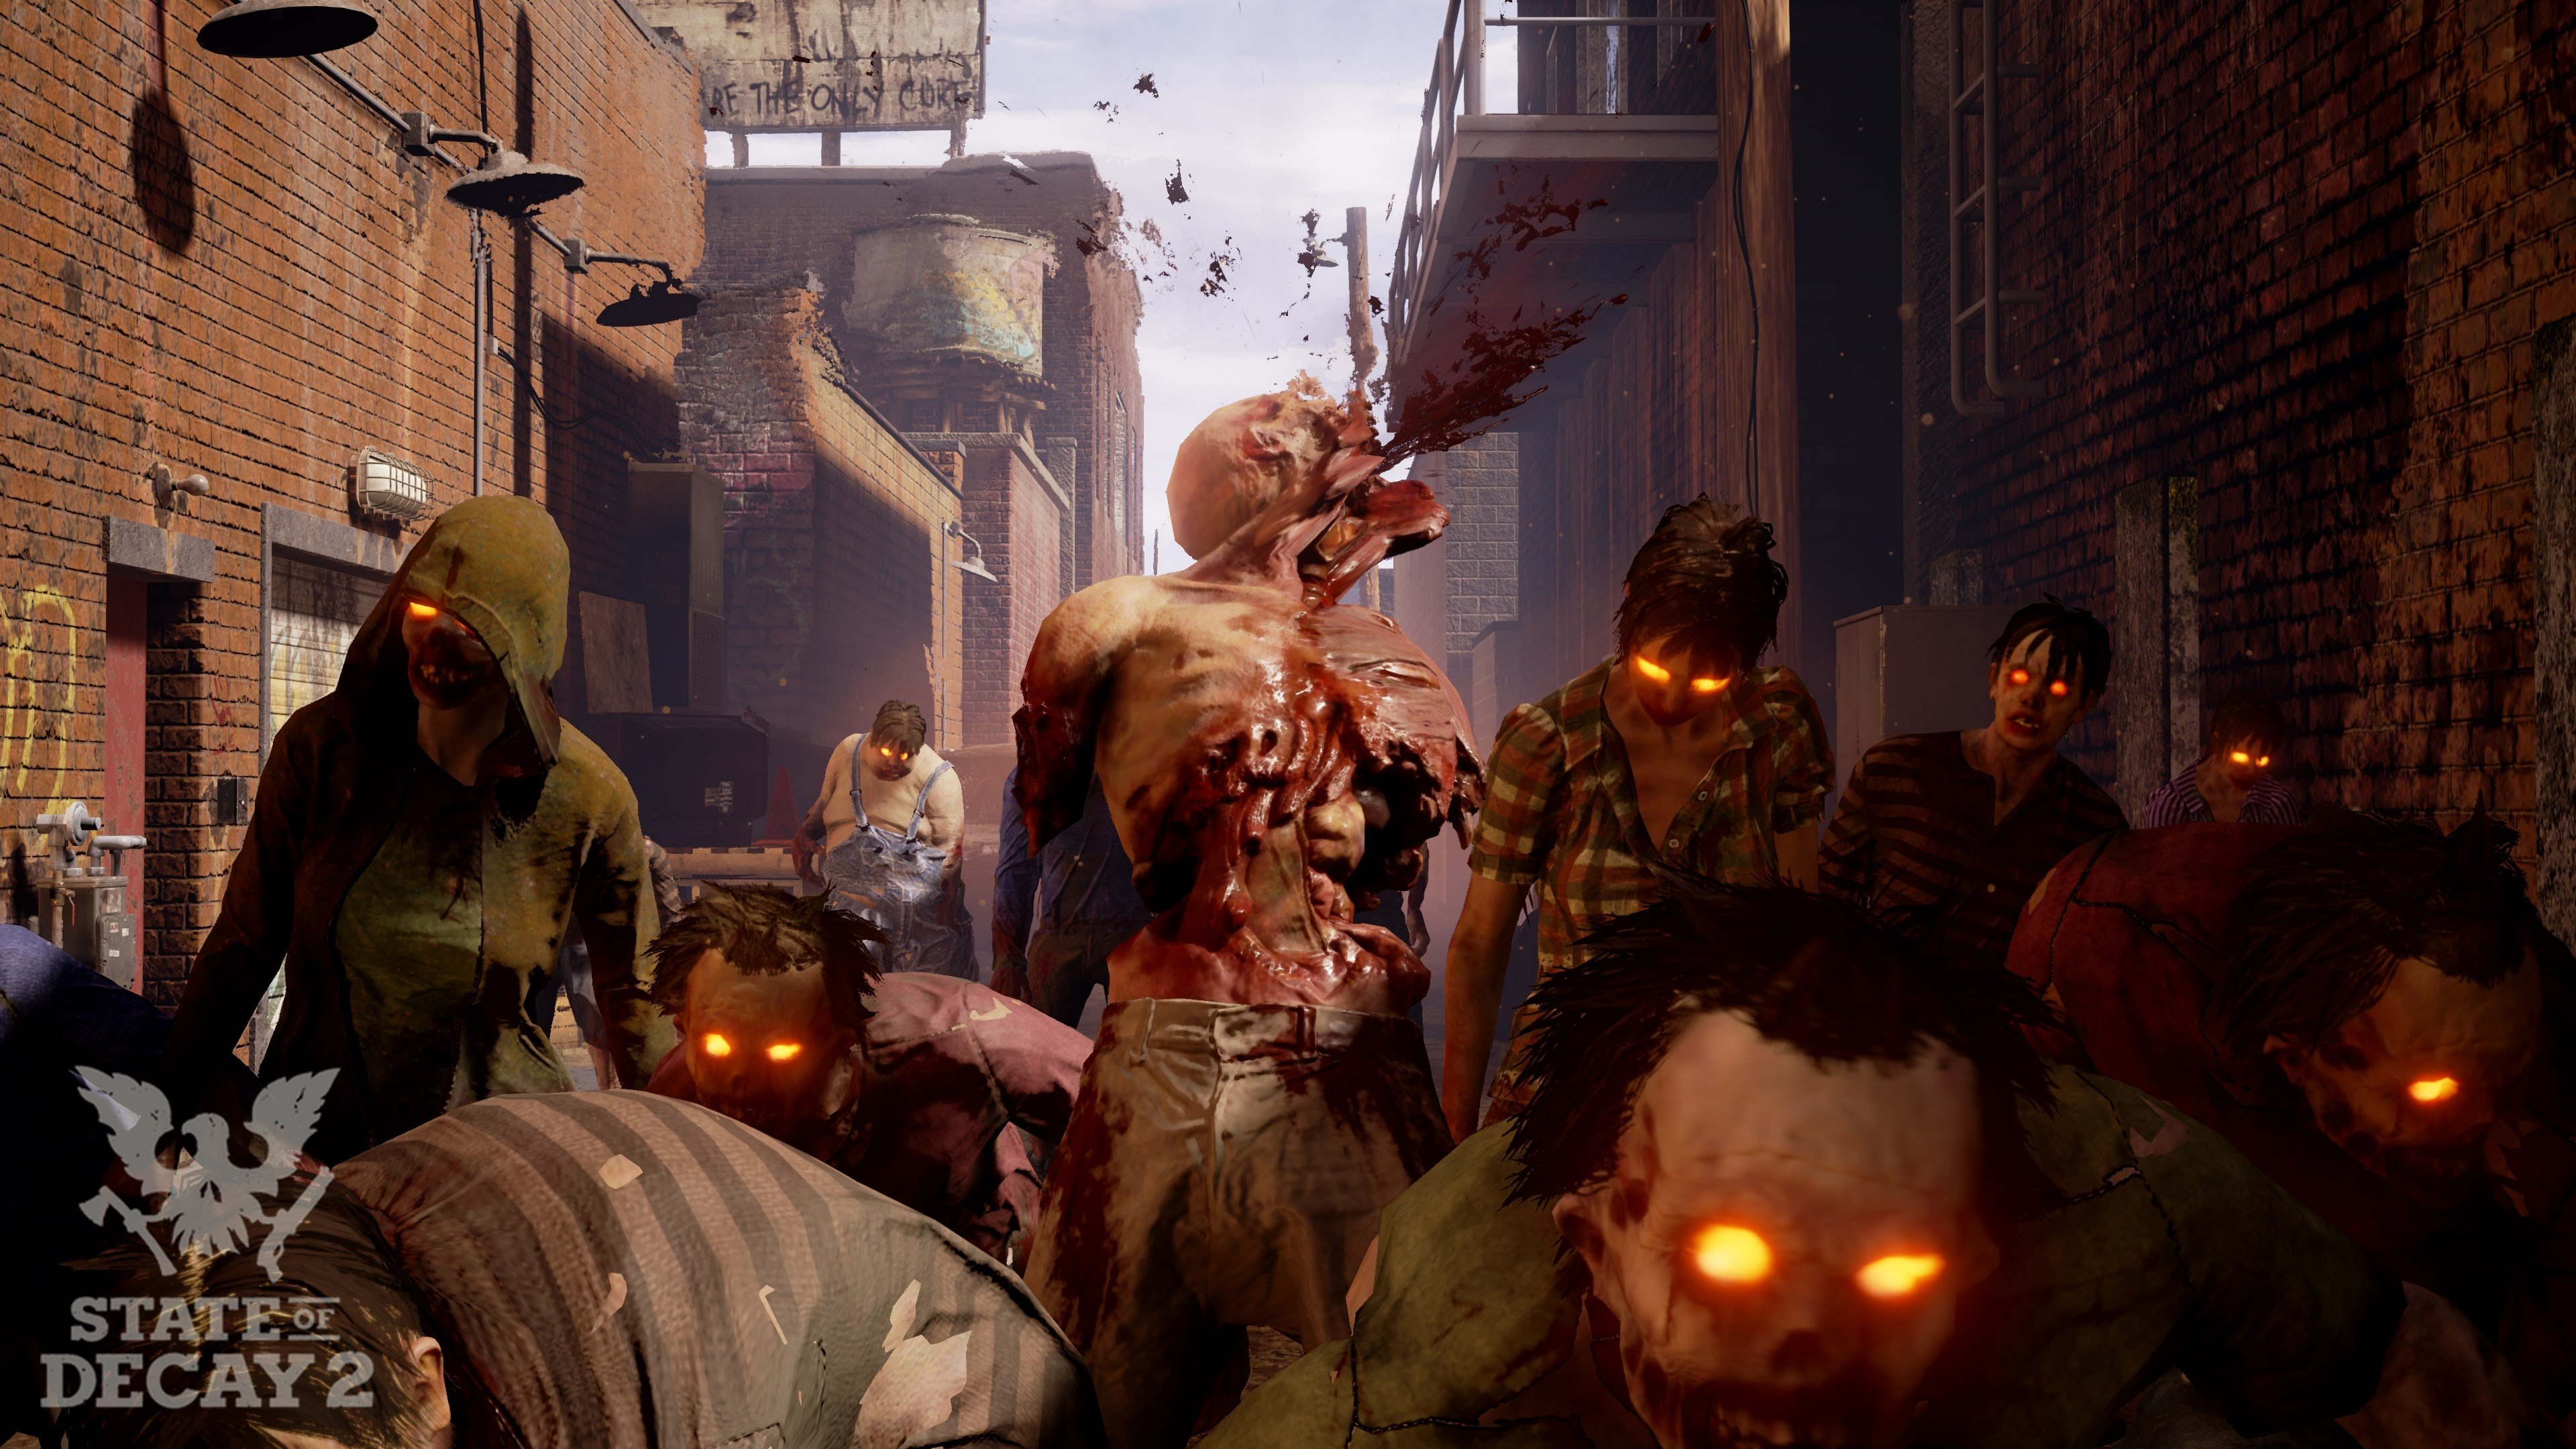 State of Decay 2: Use This Exploit To Earn Unlimited Influence